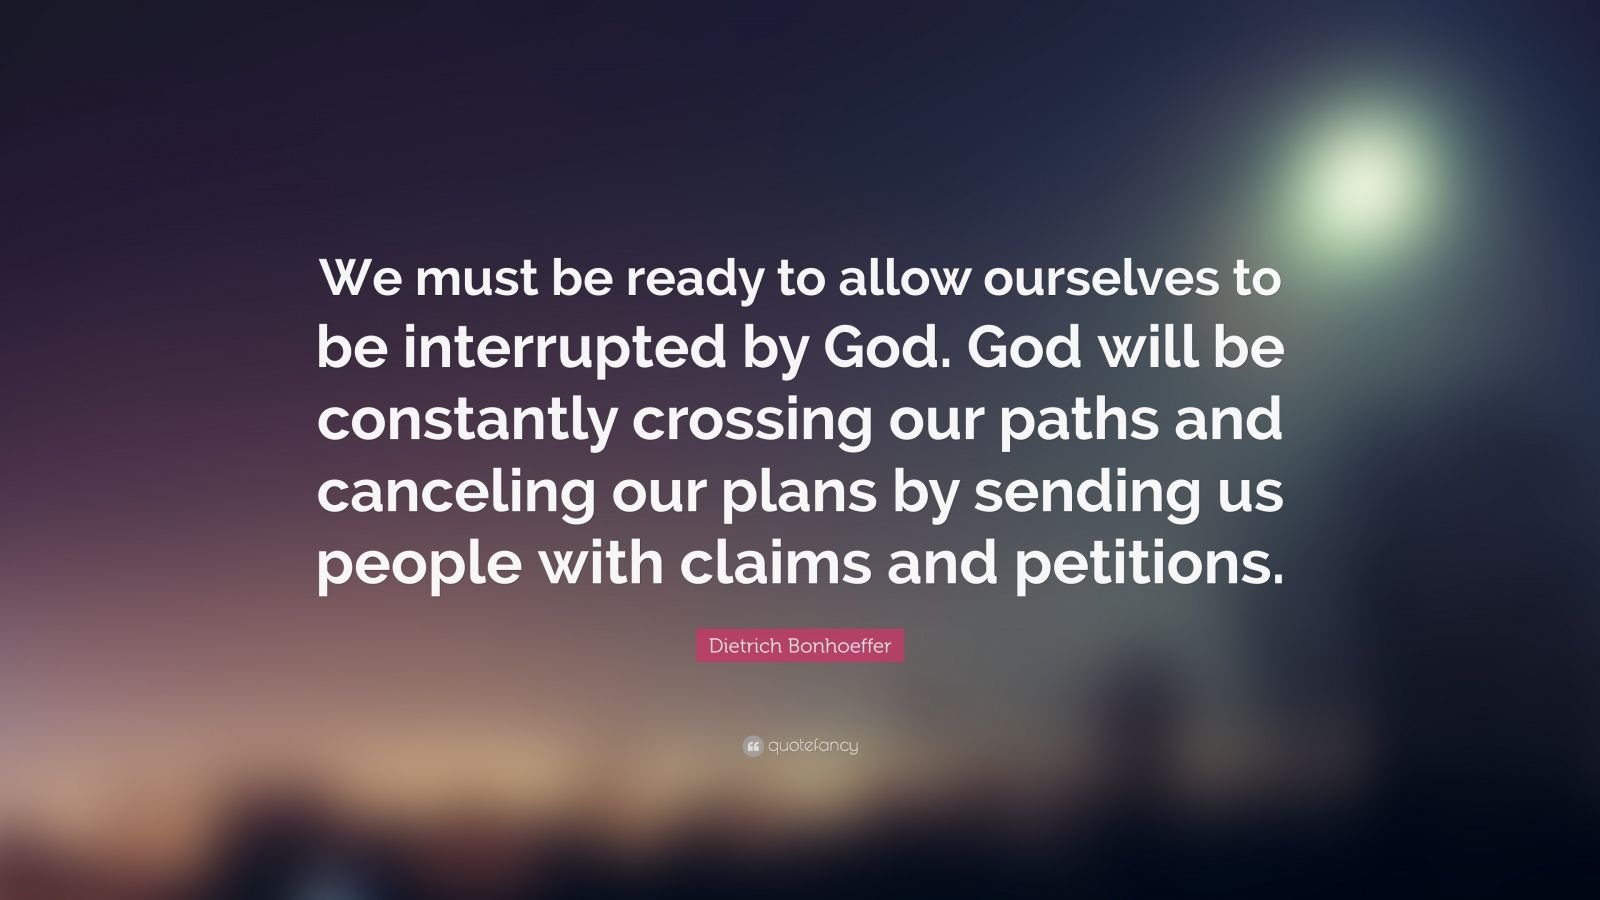 "Dietrich Bonhoeffer Quote: ""We must be ready to allow ourselves to be interrupted by God. God will be constantly crossing our paths and canceling our plans by sending us people with claims and petitions."""